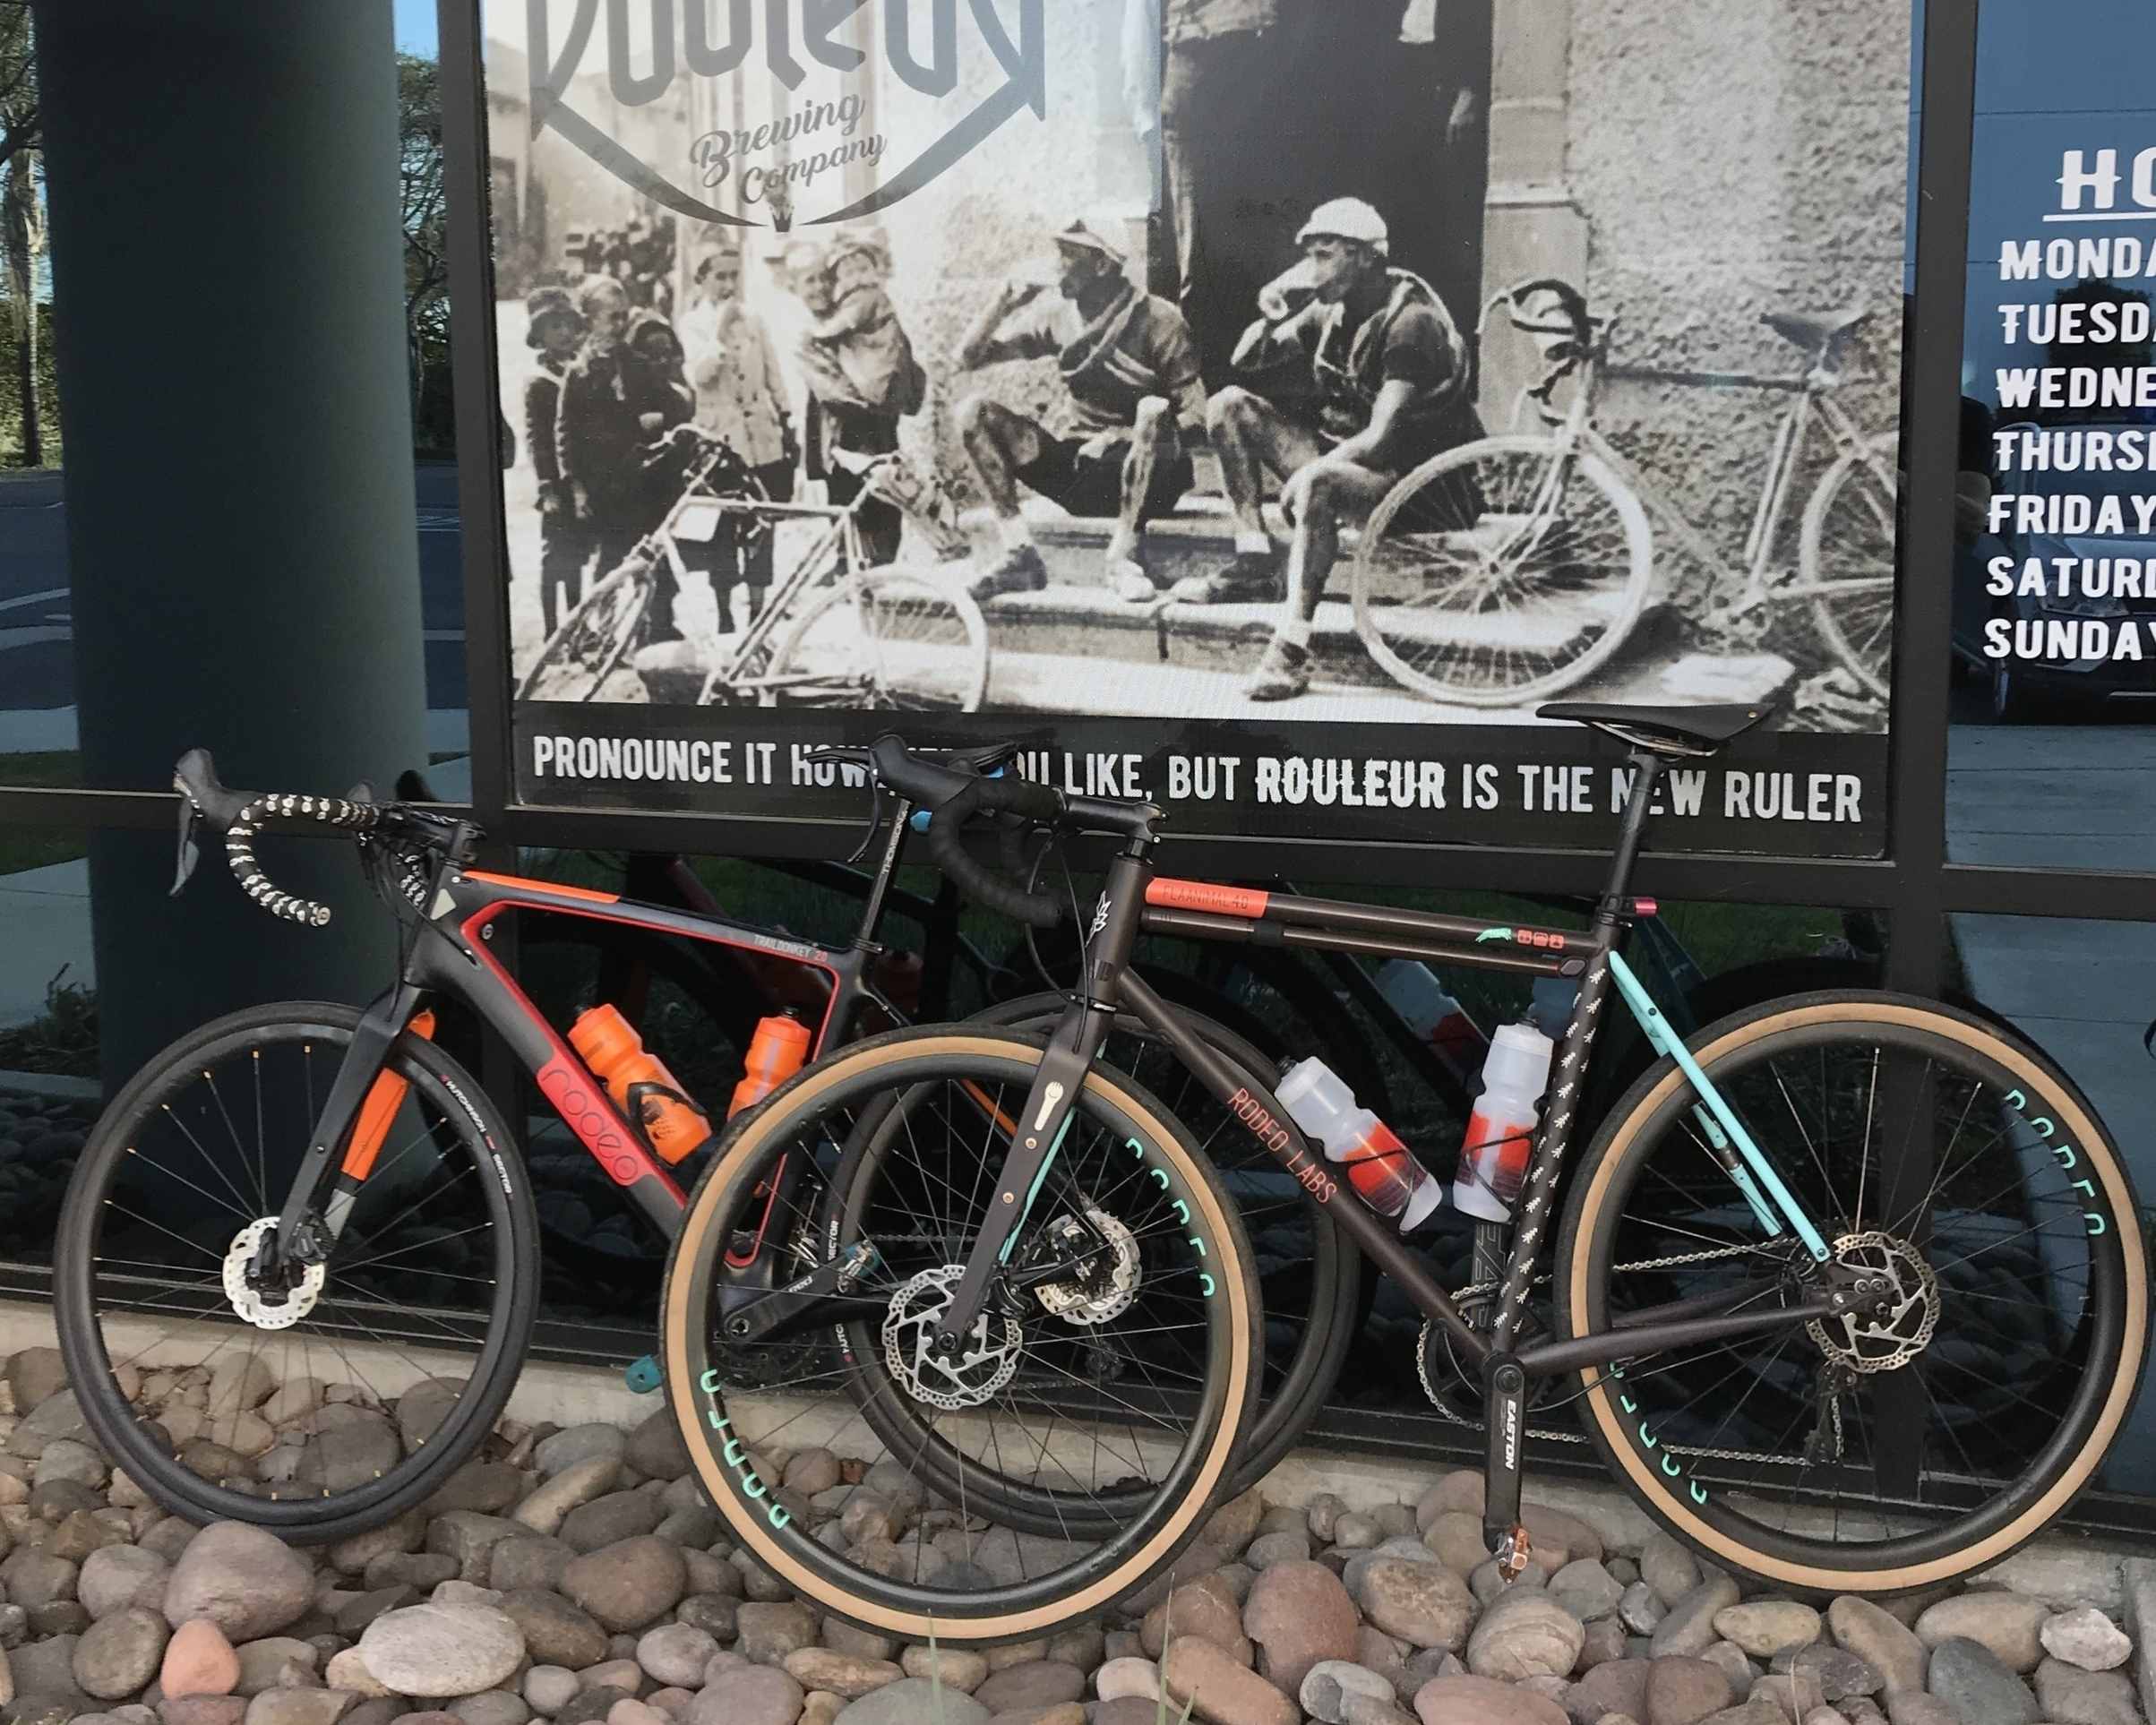 Trail Donkey and Flaanimal bikes by Rodeo Adventure Labs Bikes outside Rouleur Brewing Co., a friendly place for such things.